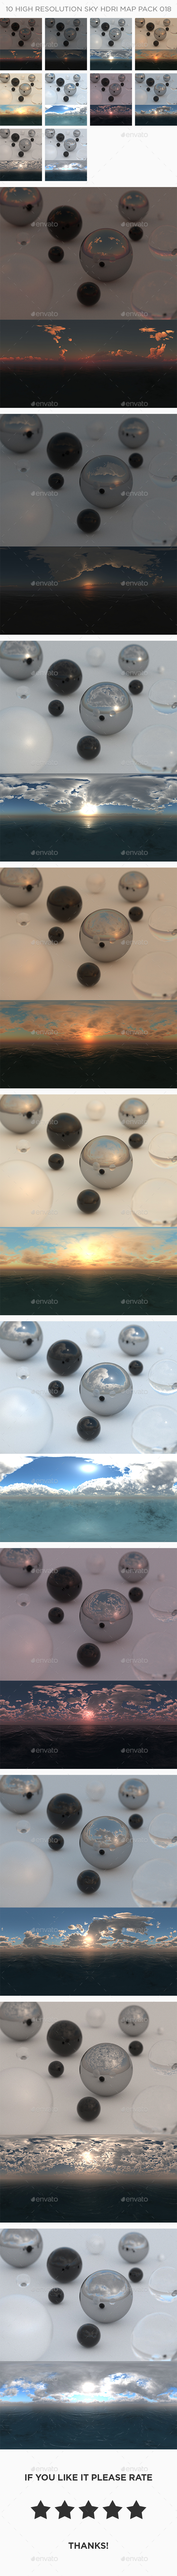 10 High Resolution Sky HDRi Maps Pack 018 - 3DOcean Item for Sale